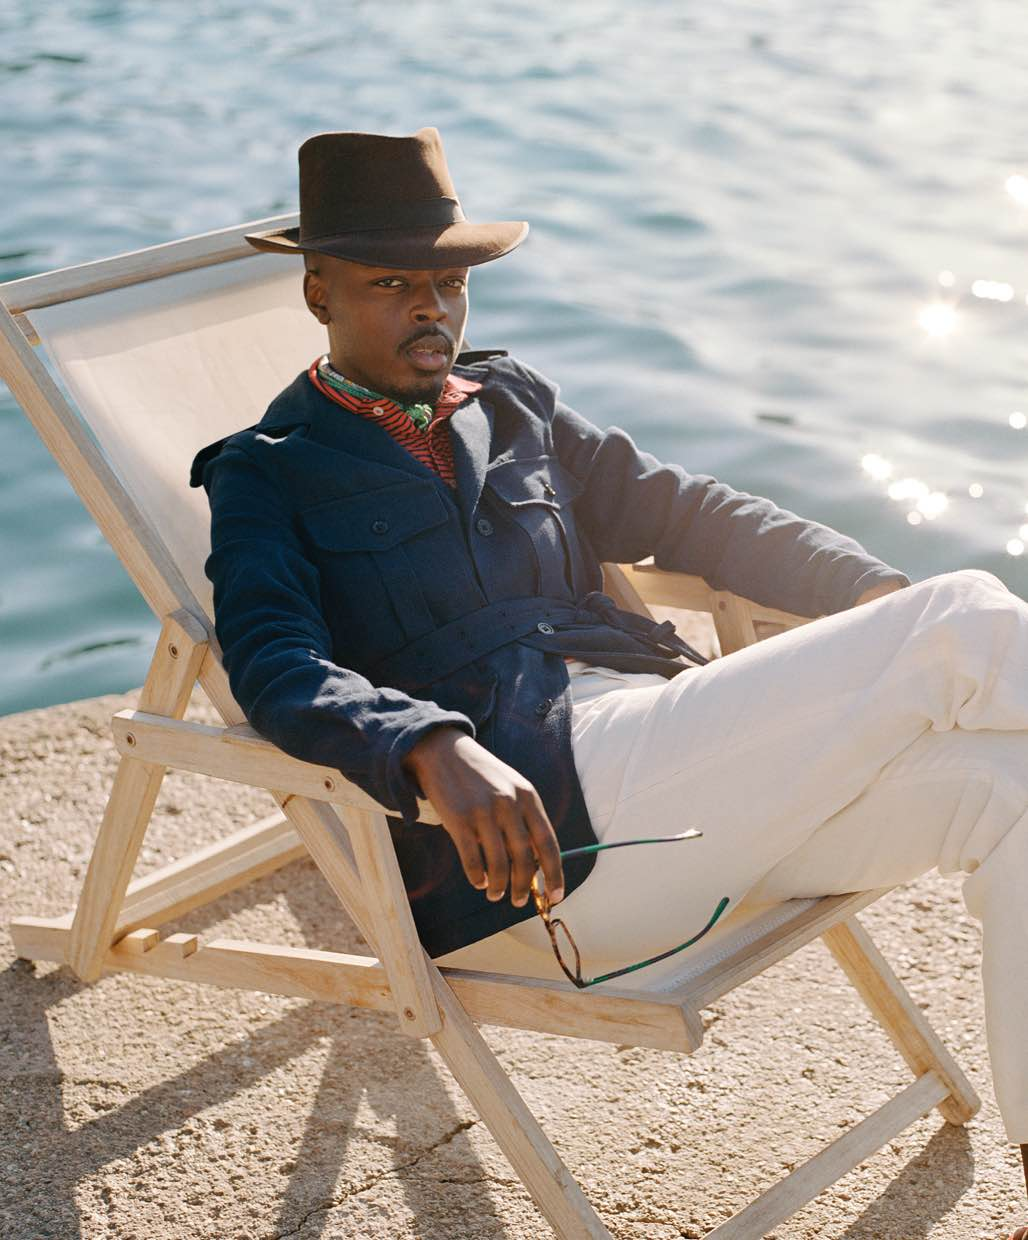 Man on beach chair wears navy jacket and white pants.